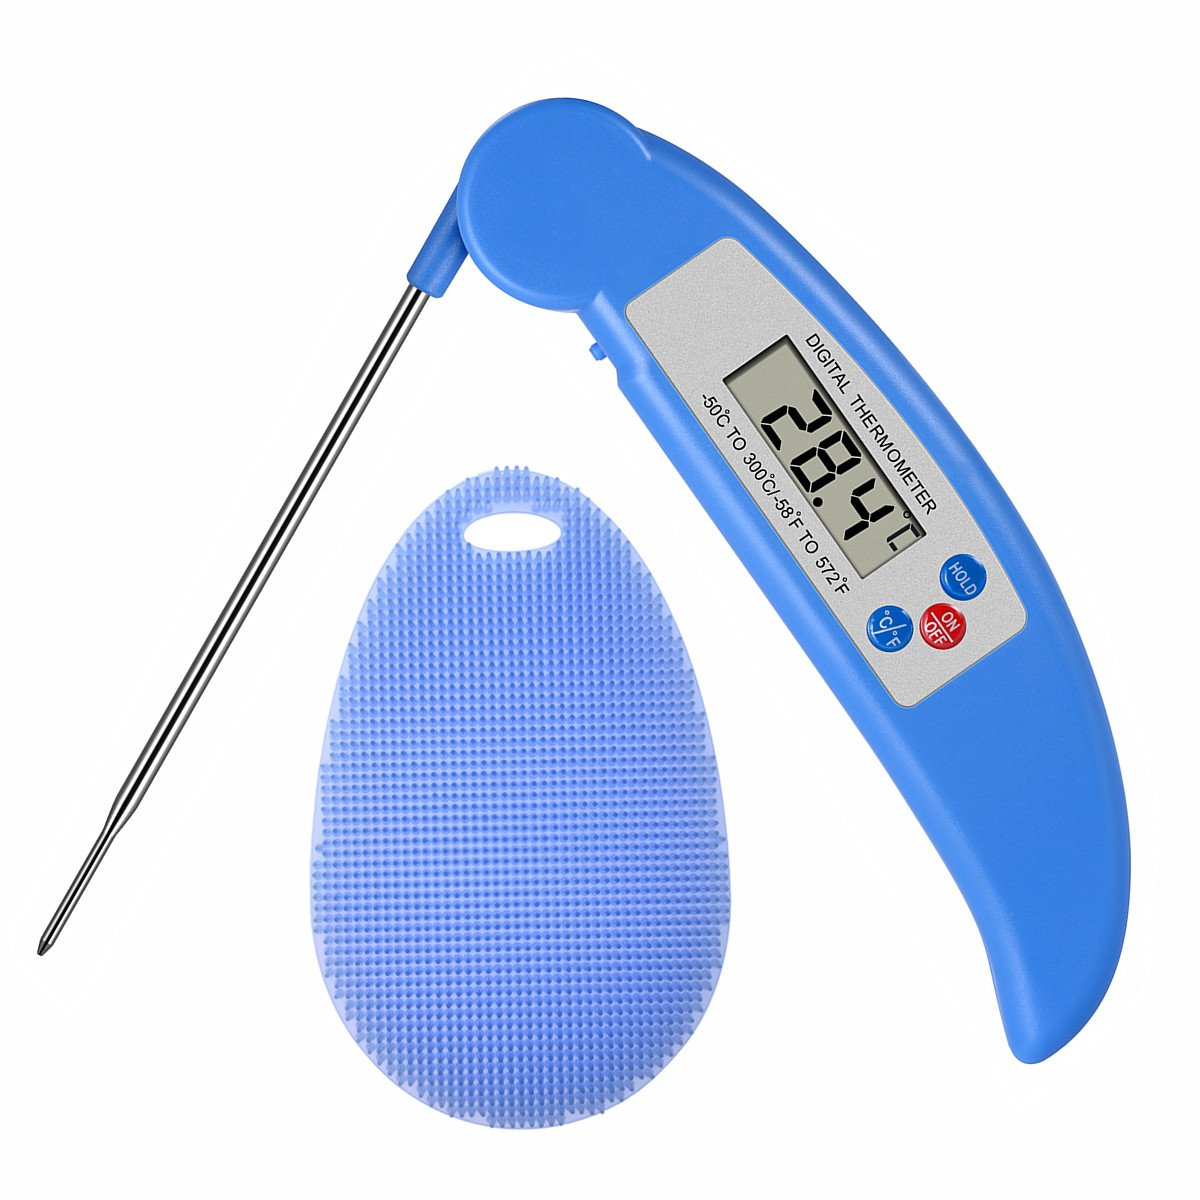 AROUSE Meat Thermometer Digital Instant Read Cooking Thermometer Electronic Food Thermometer With Probe and Kitchen Silicone Sponge Brush for Grill Food, Grilling BBQ, Milk, Tea, Coffee,Blue